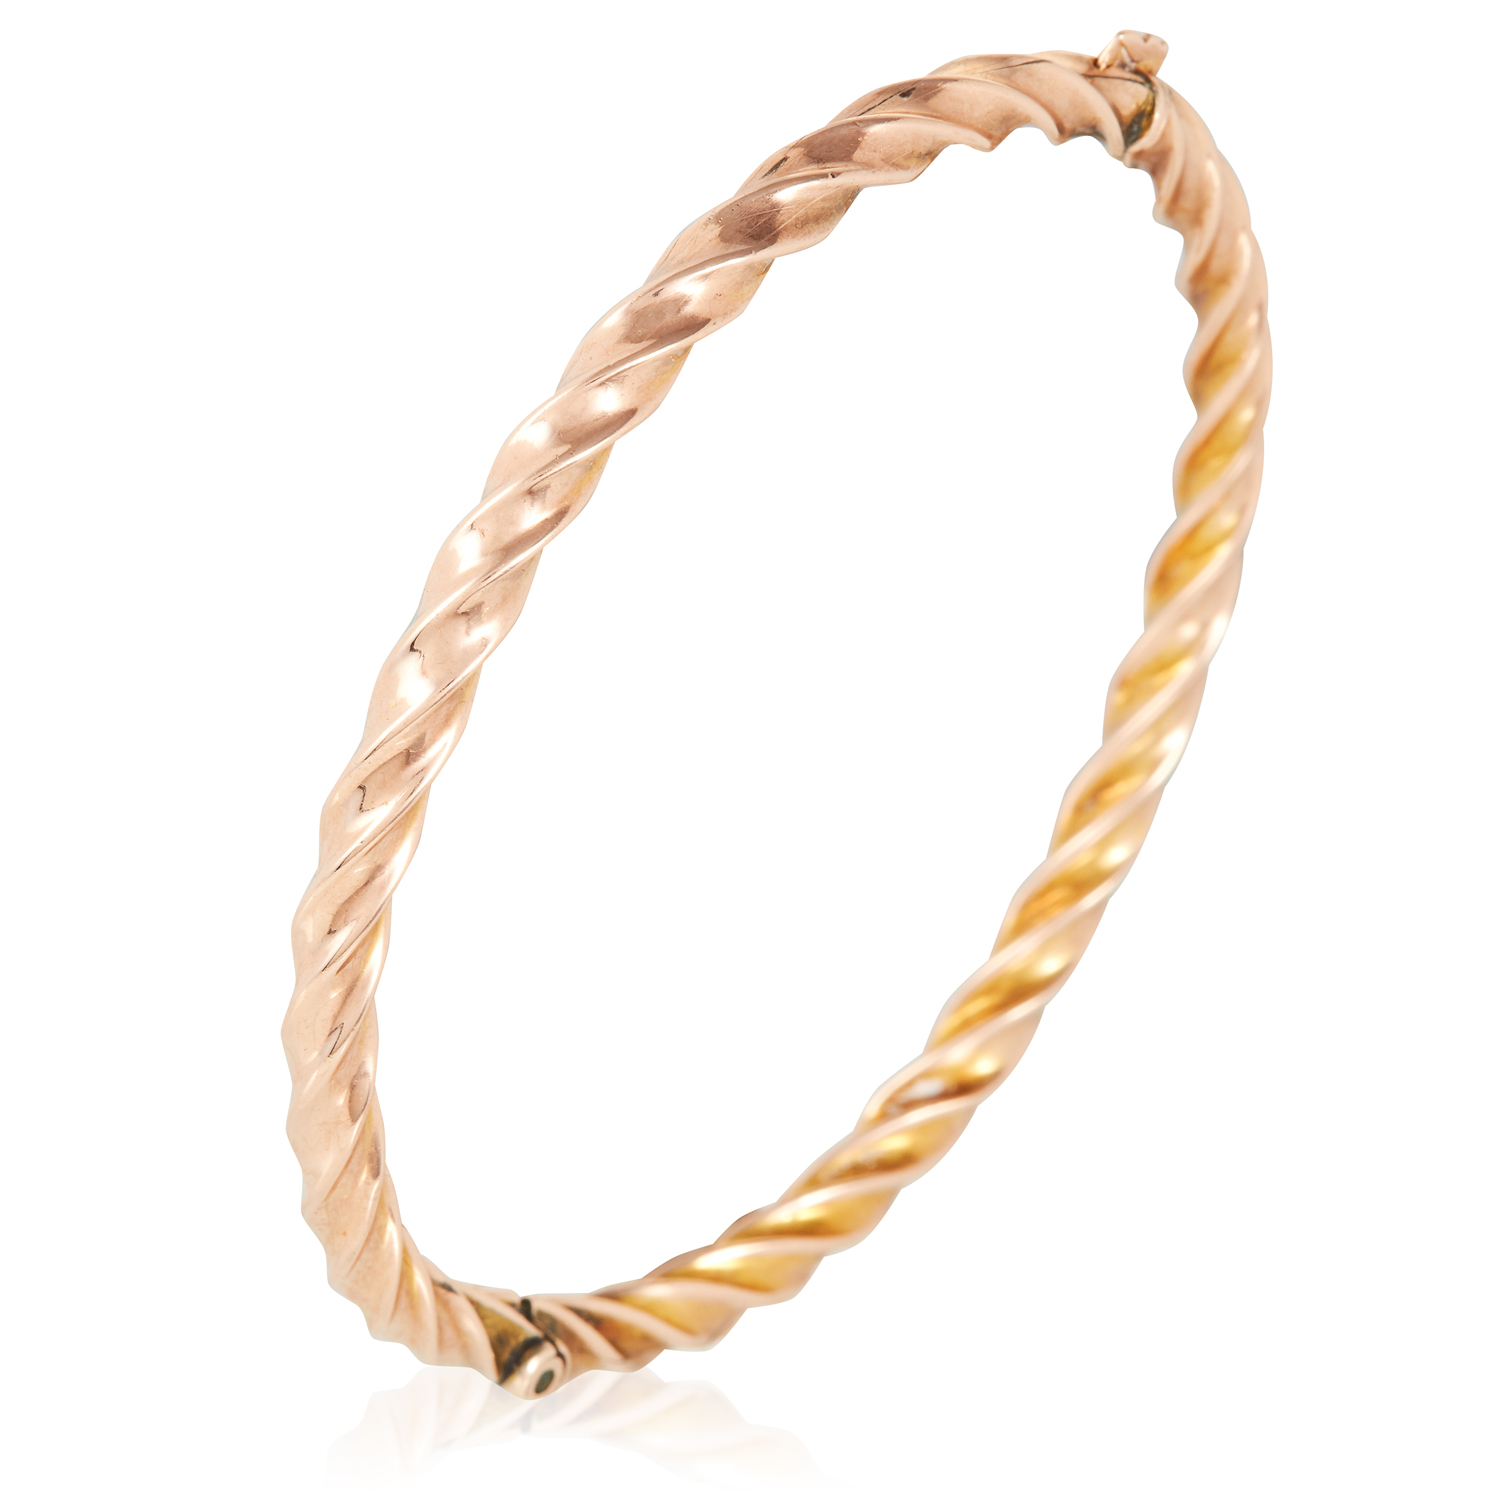 A GOLD BANGLE in yellow gold, in twisted gold motif, unmarked, 5.5cm inner diameter, 5.5g.